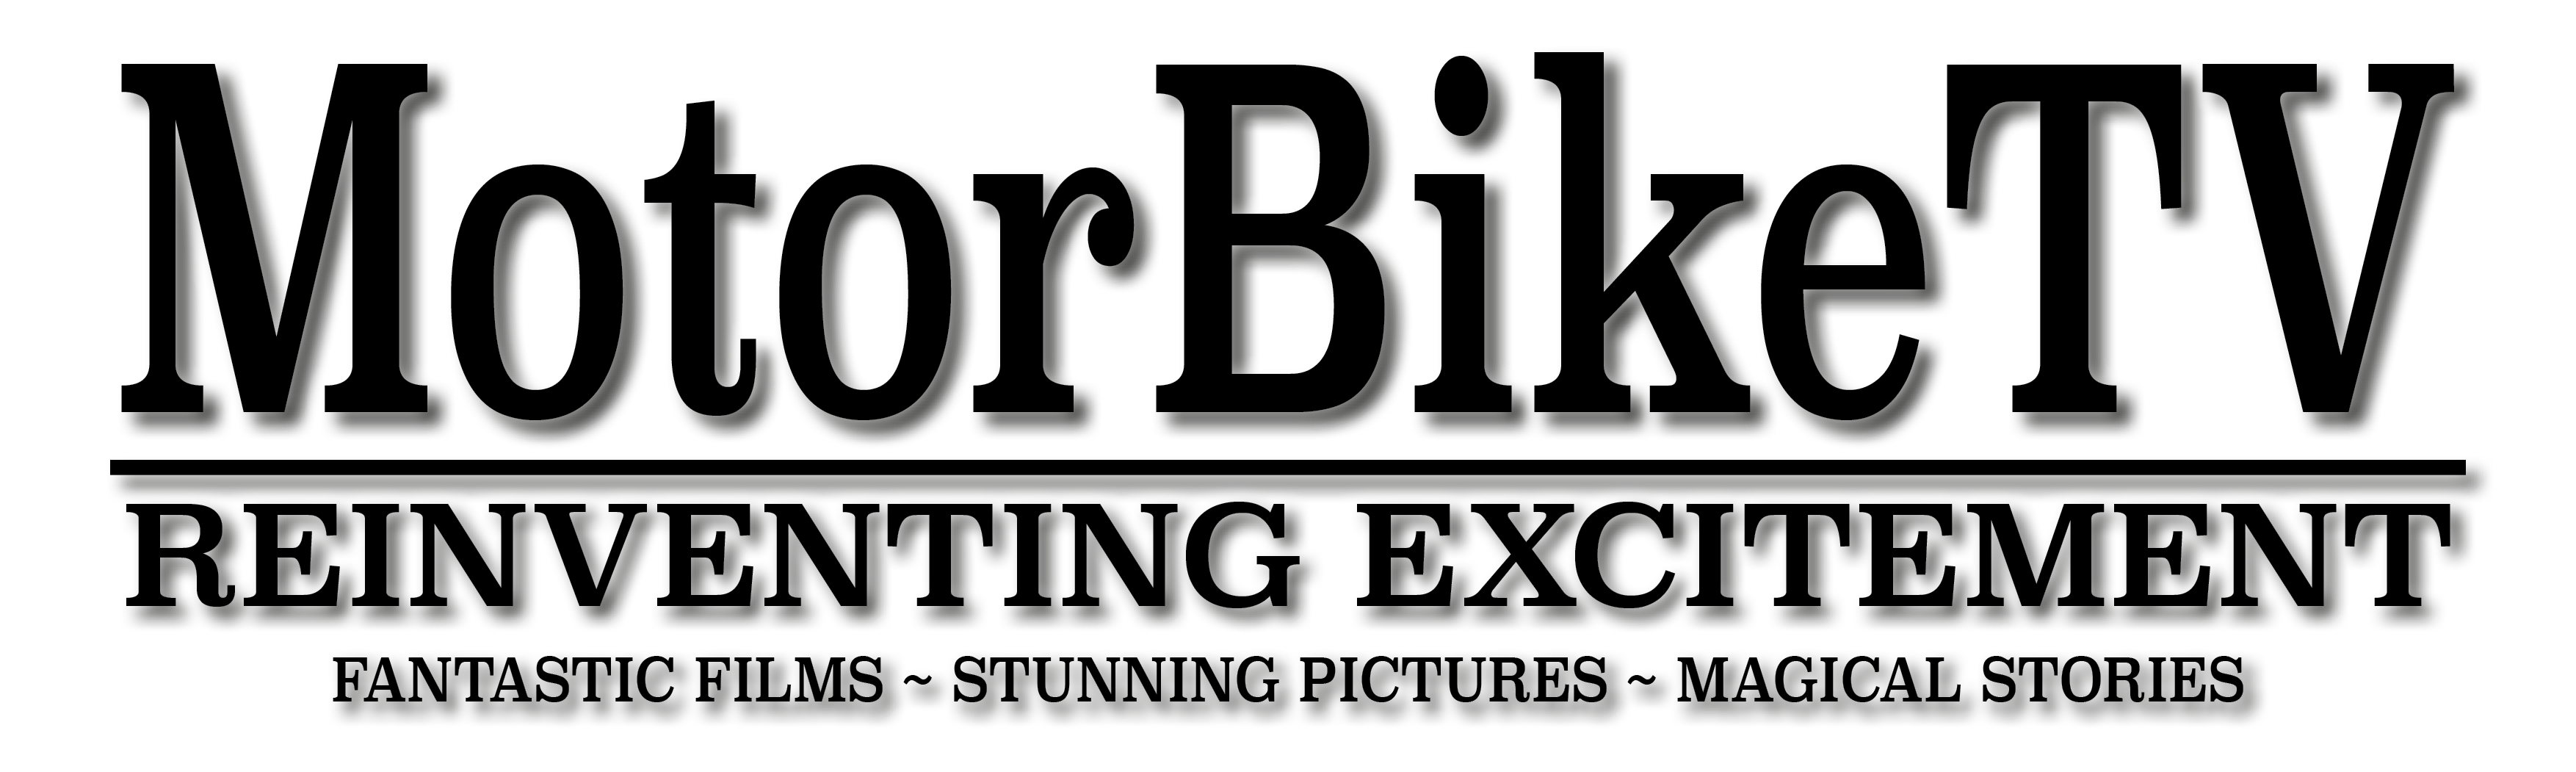 MotorbikeTV, Motorbike touring guides, motorbike touring guides, motorbike tv, touring guide lake district, touring guide northumberland